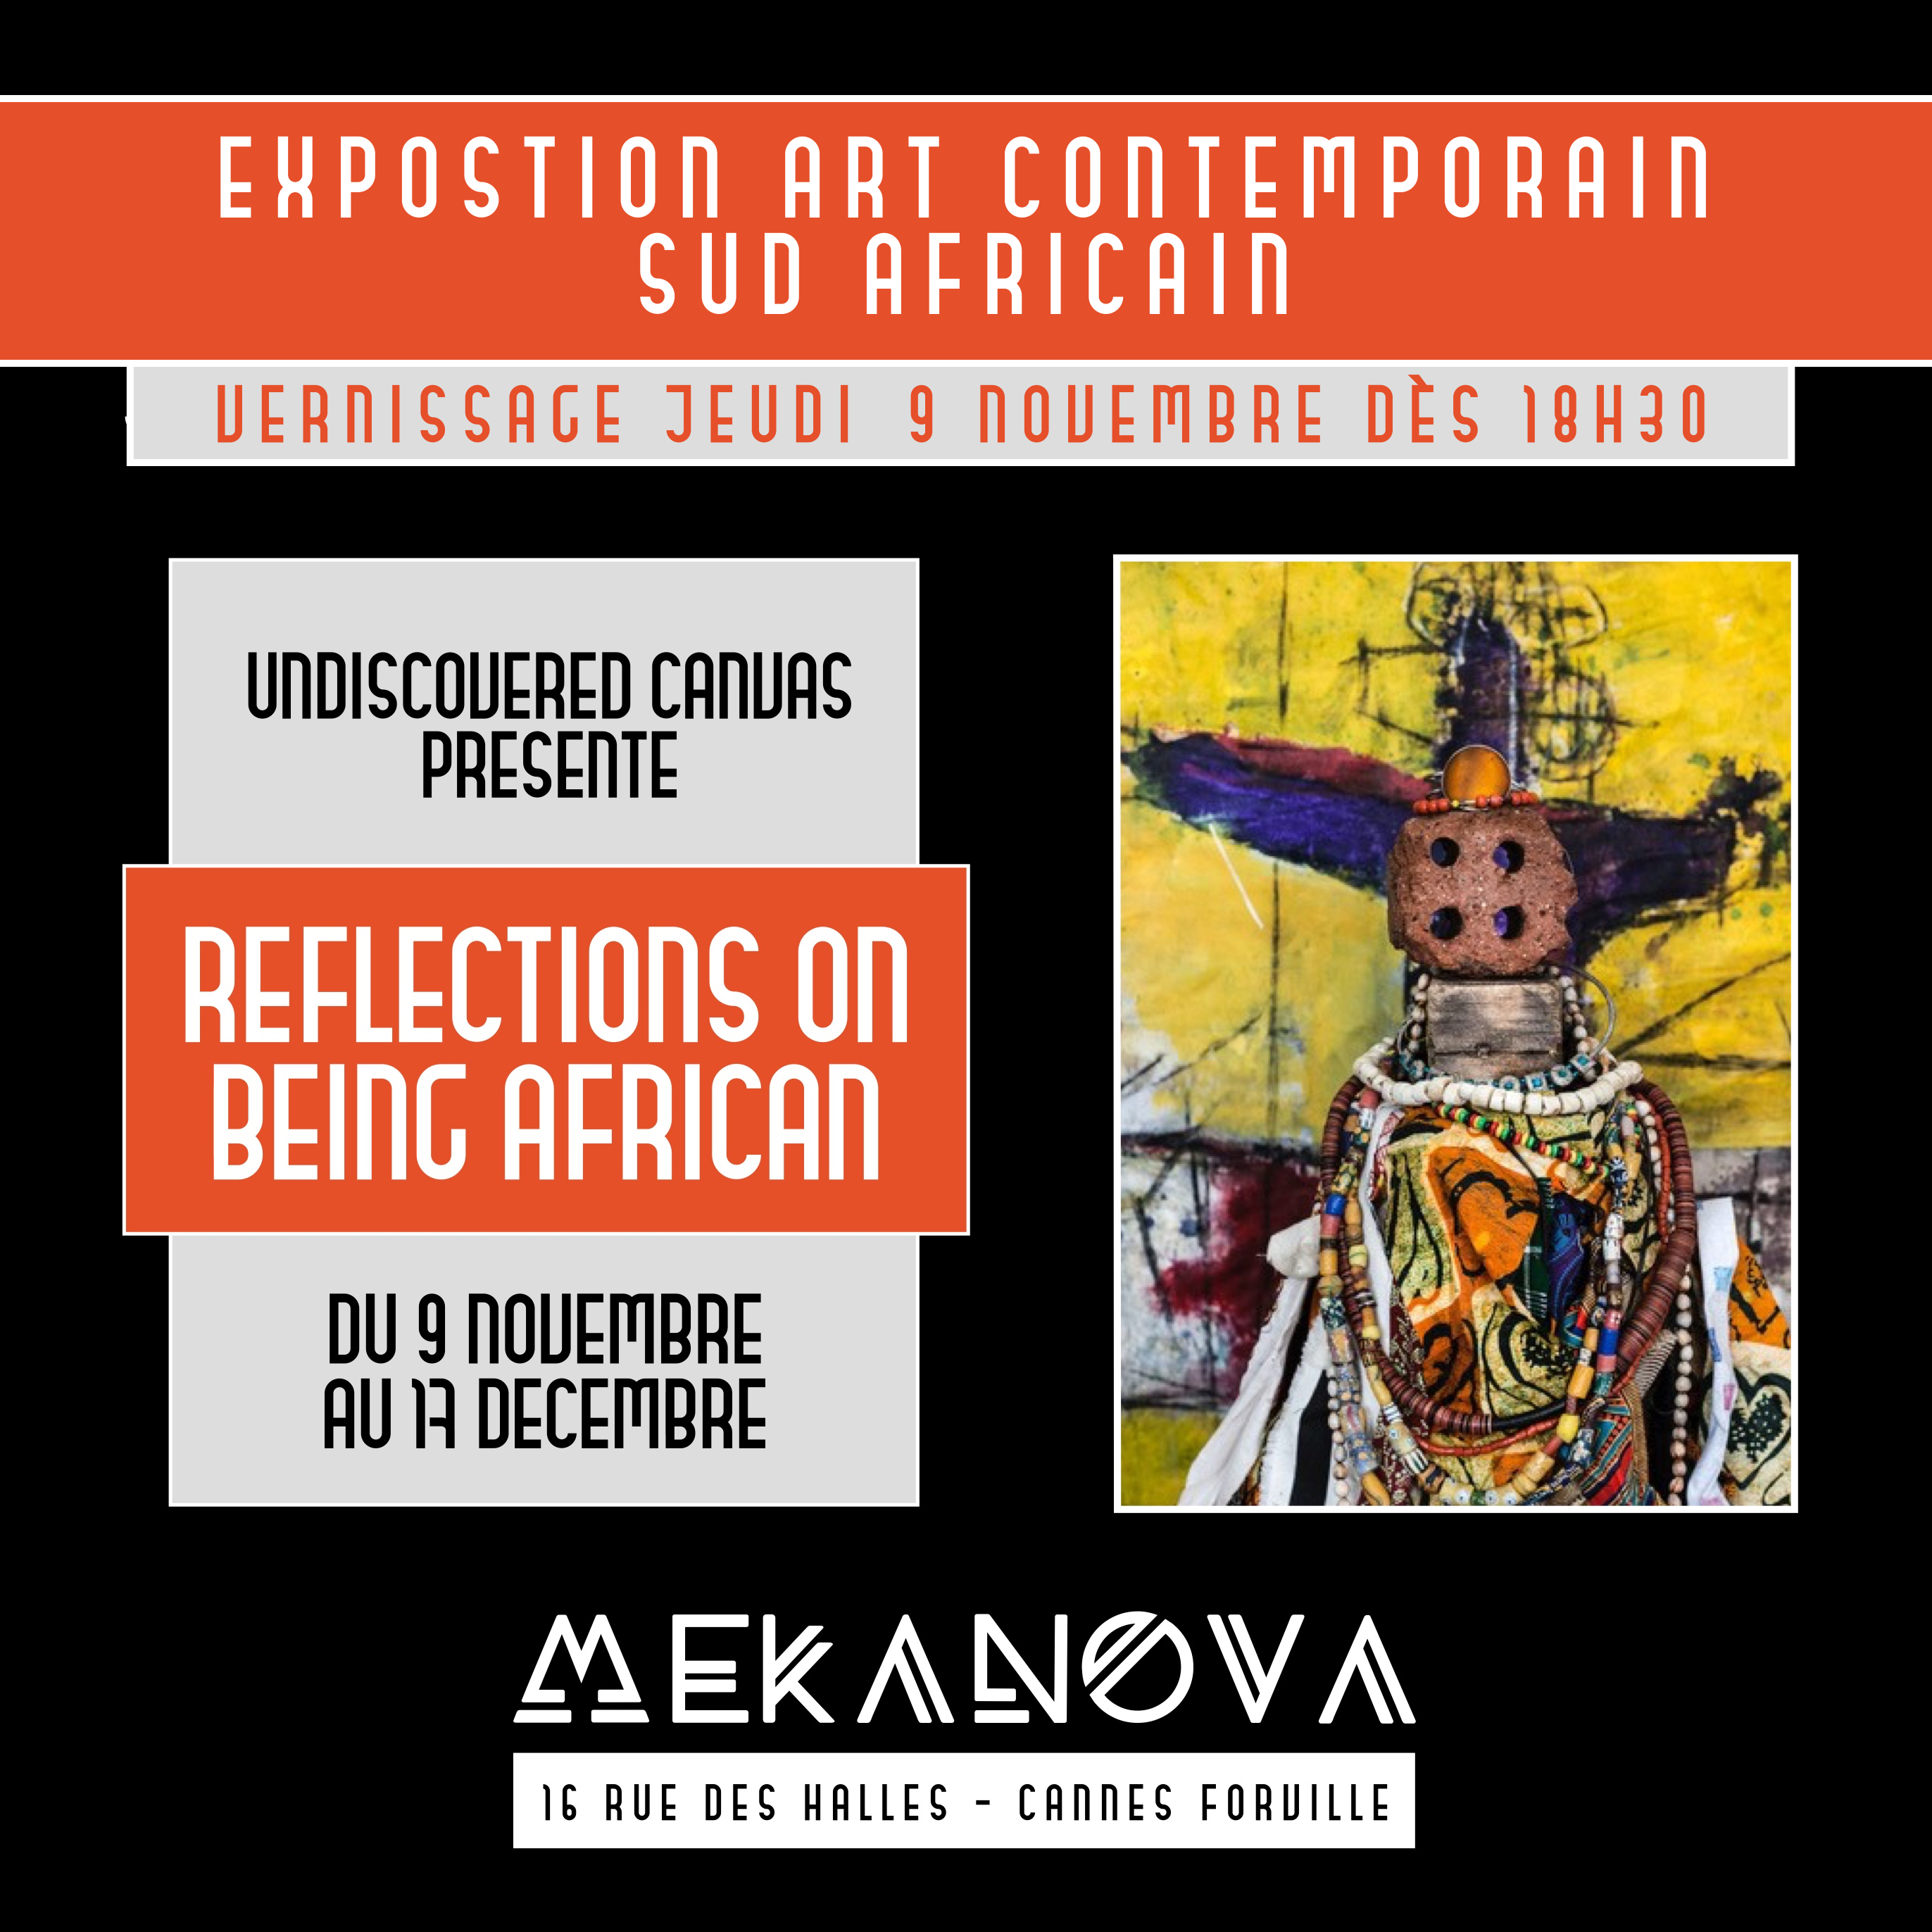 VERNISSAGE ART CONTEMPORAIN SUD AFRICAIN CANNES